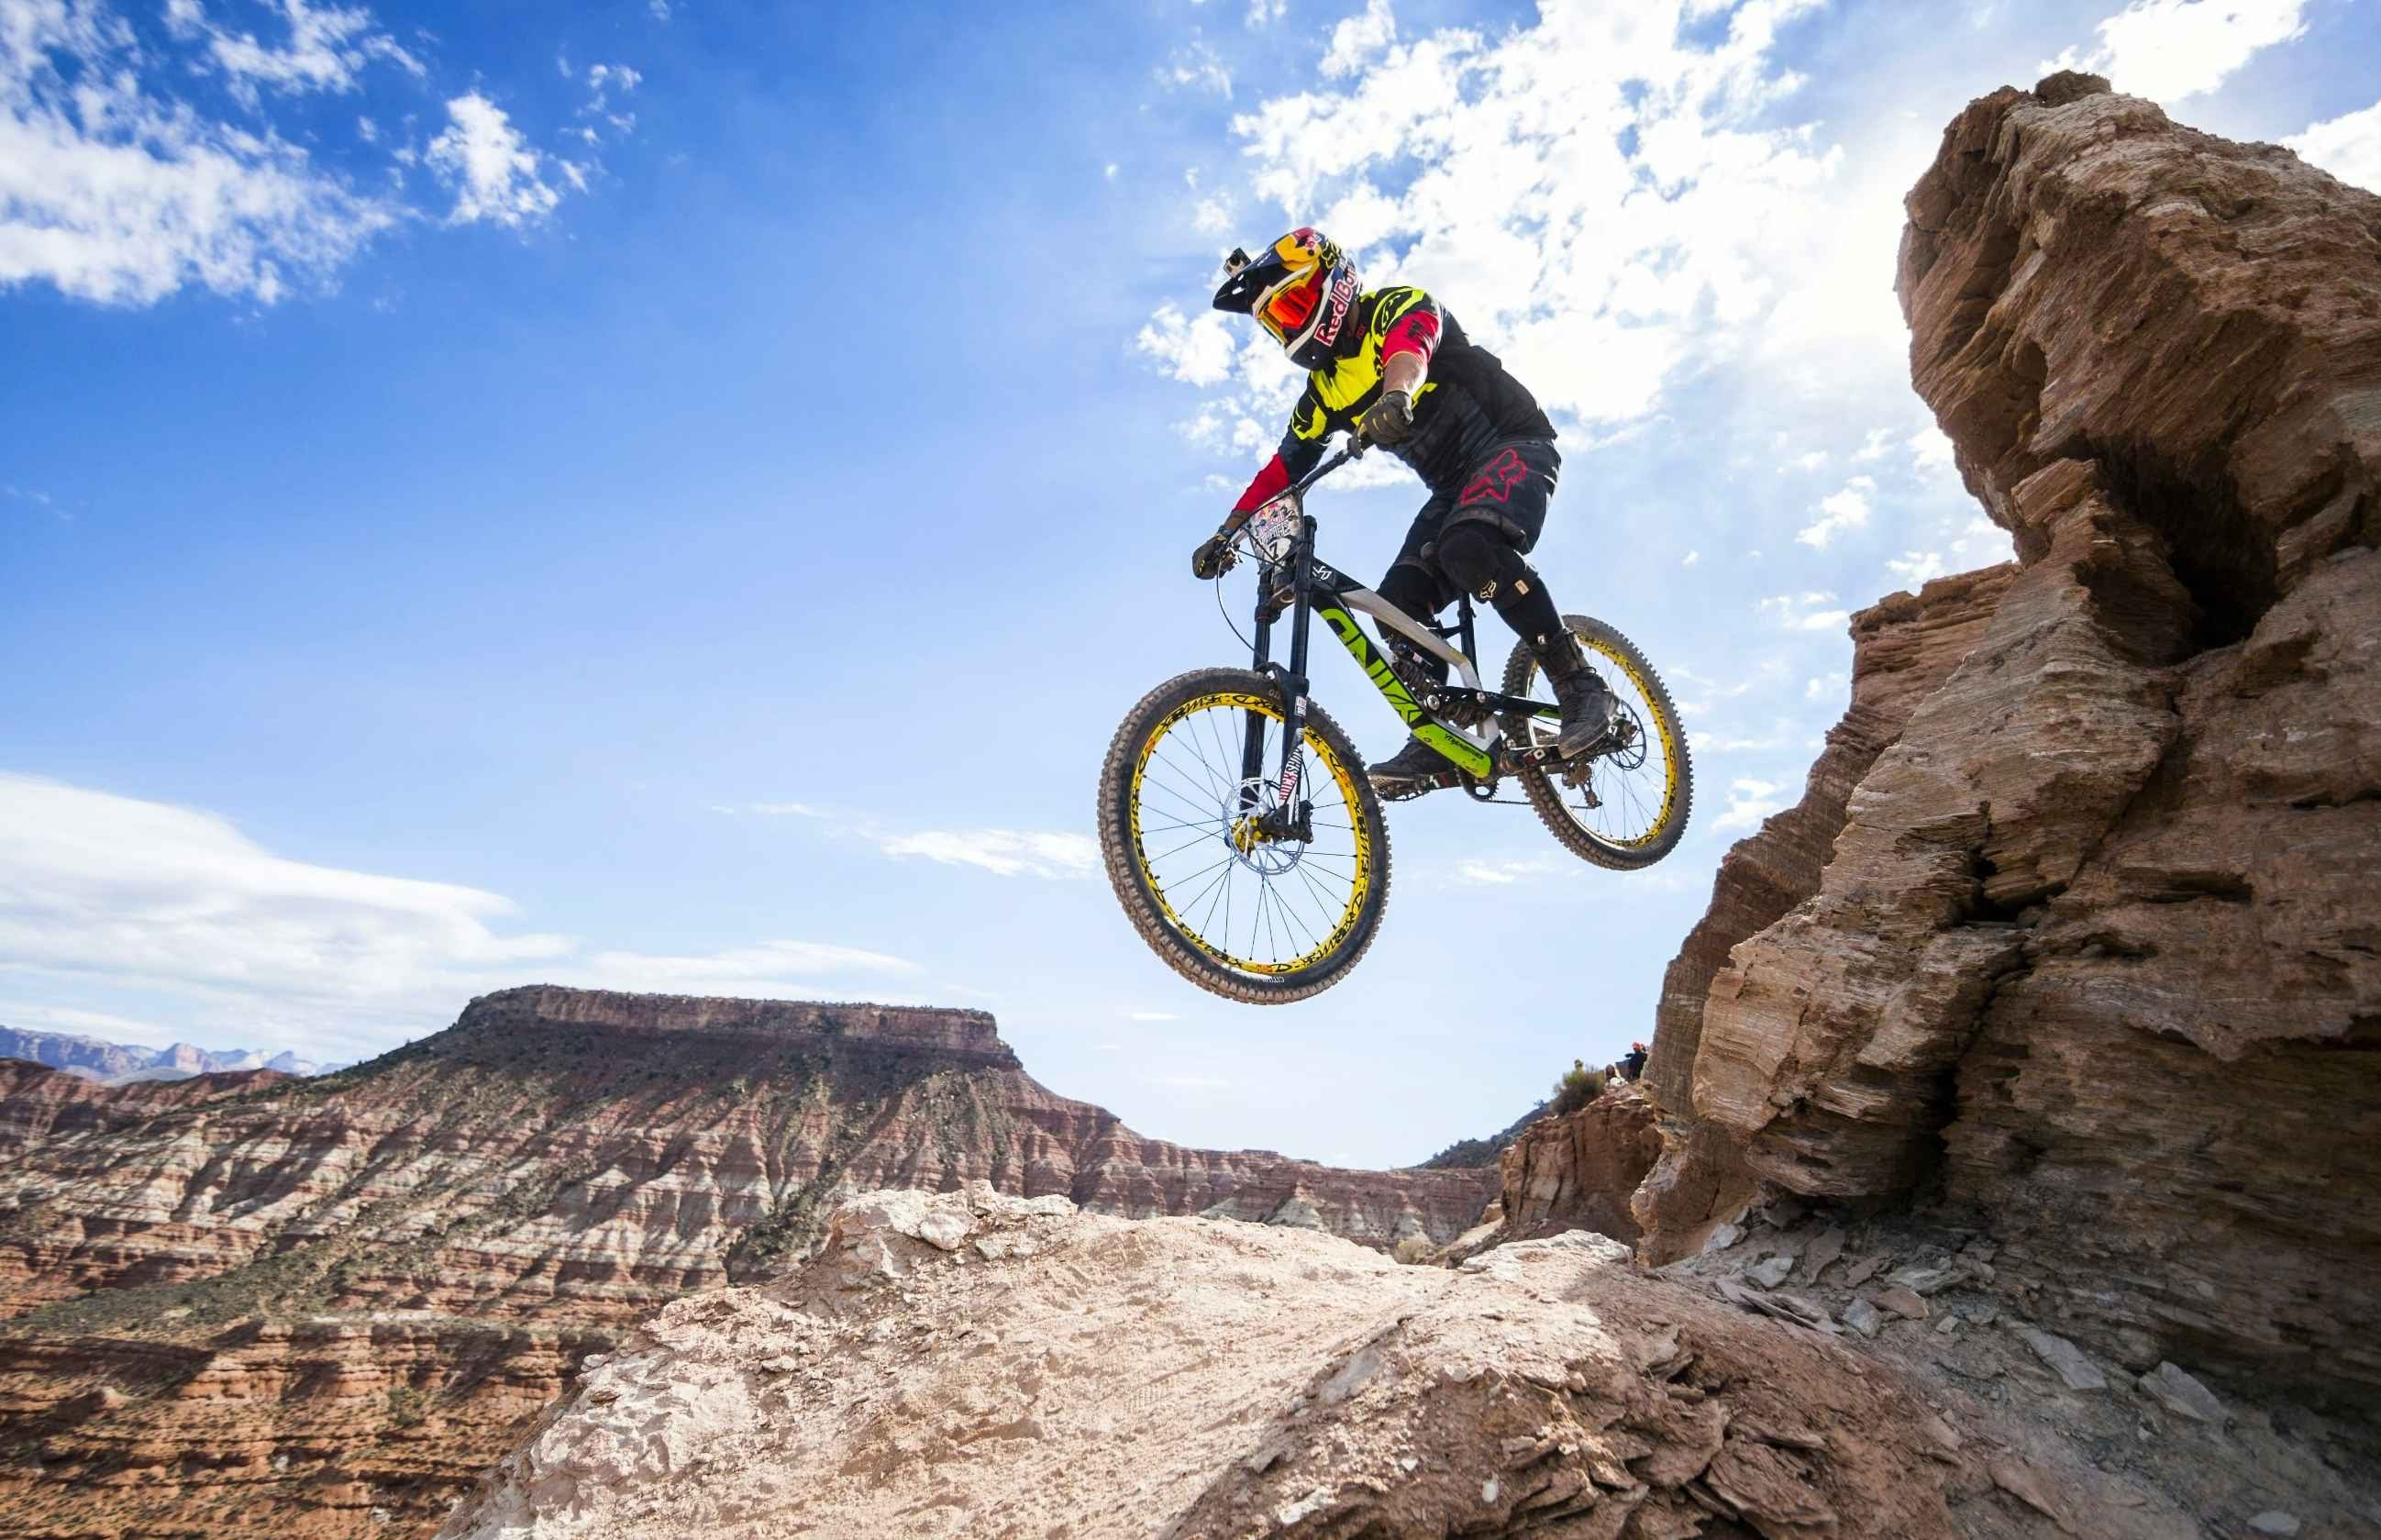 Red Bull Mountain Bike >> Top Freeride Mtb Highlights From Red Bull Rampage 2014